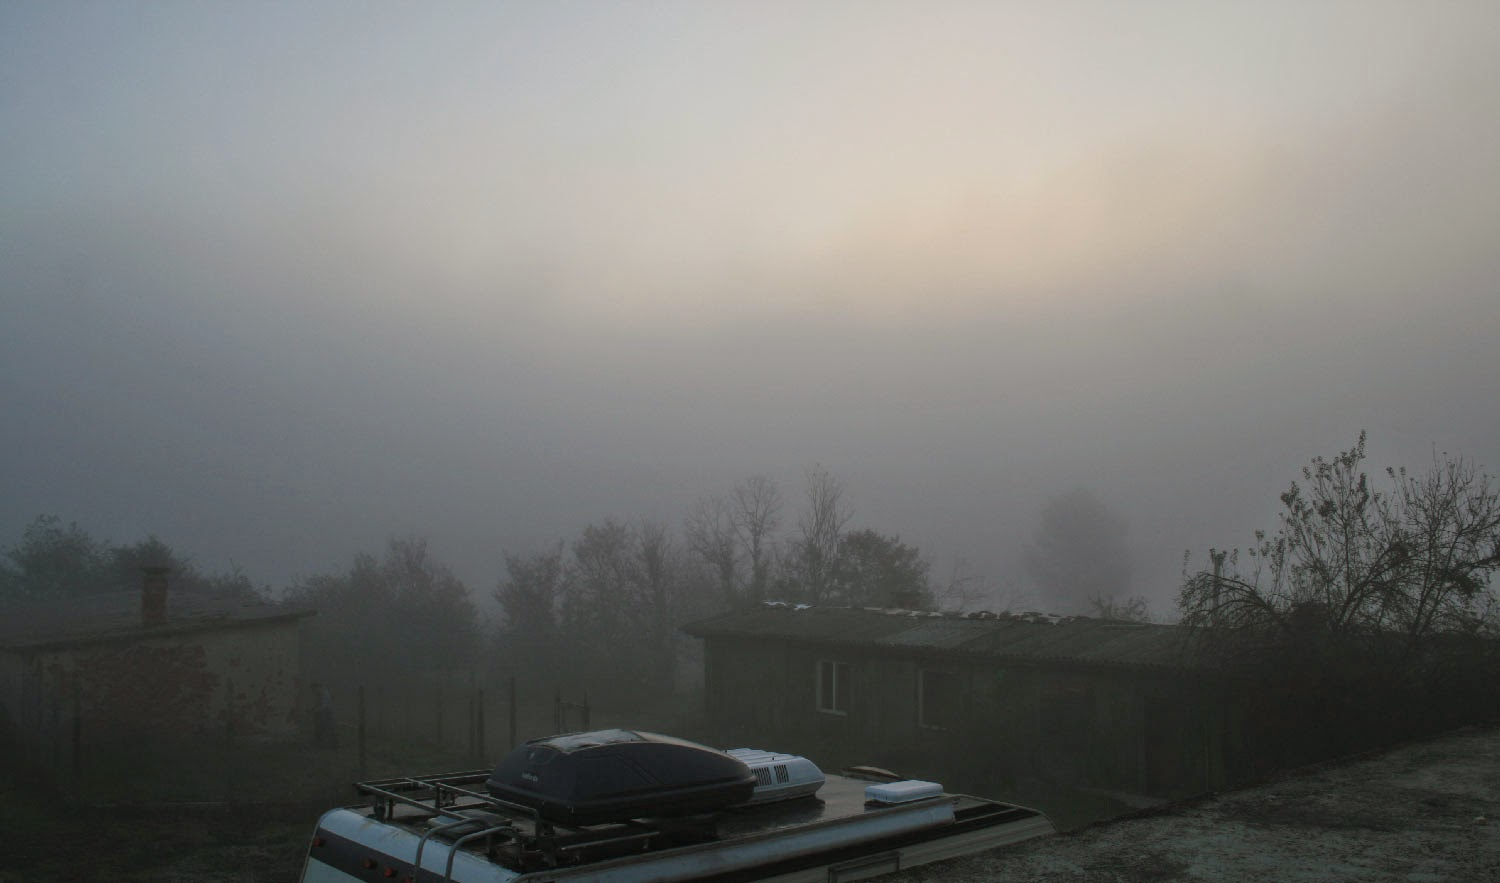 Thick mist descended